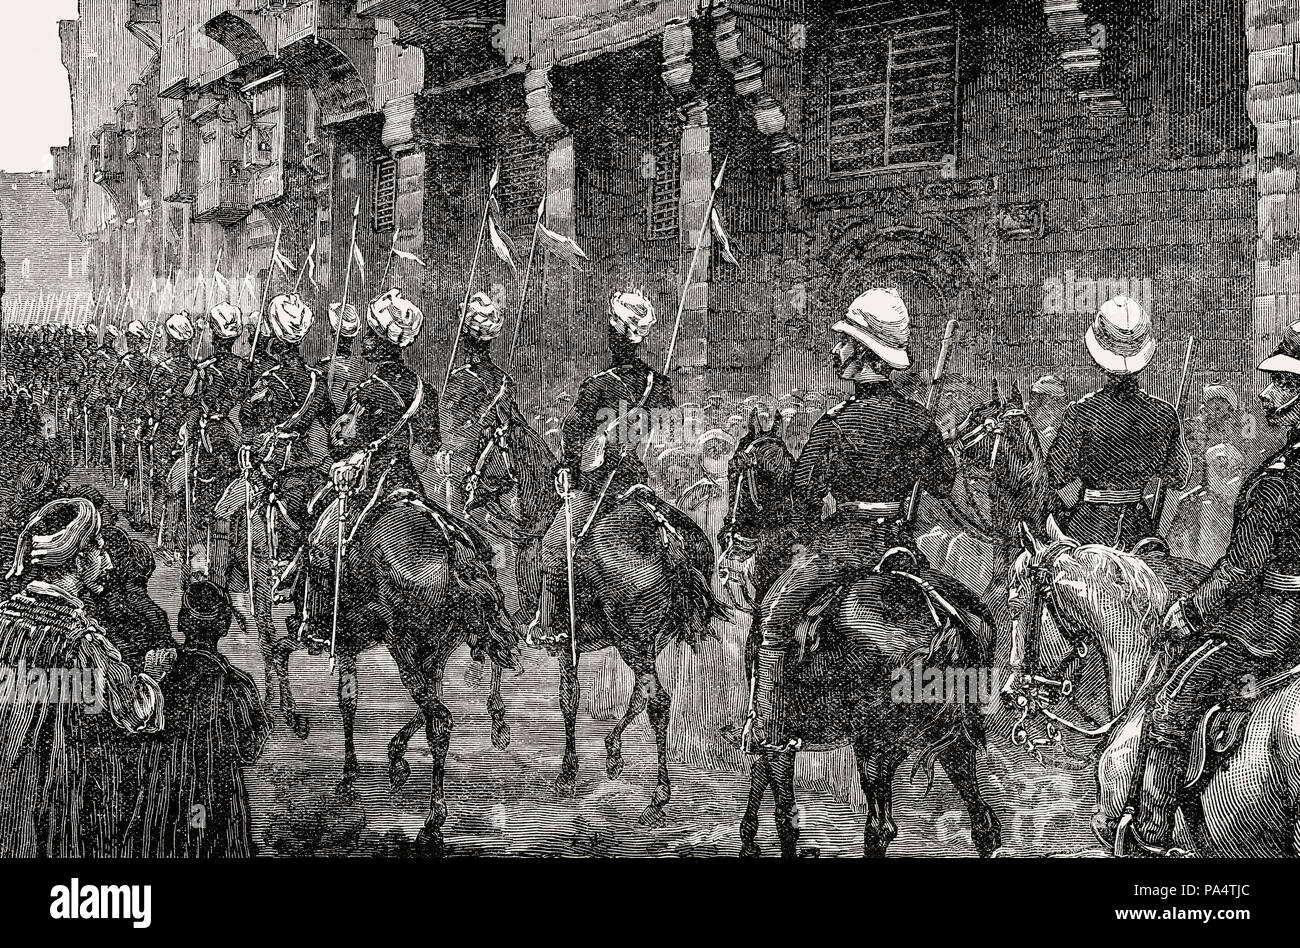 British Bengal Cavalry at Cairo, British invasion in 1882, From British Battles on Land and Sea, by James Grant - Stock Image